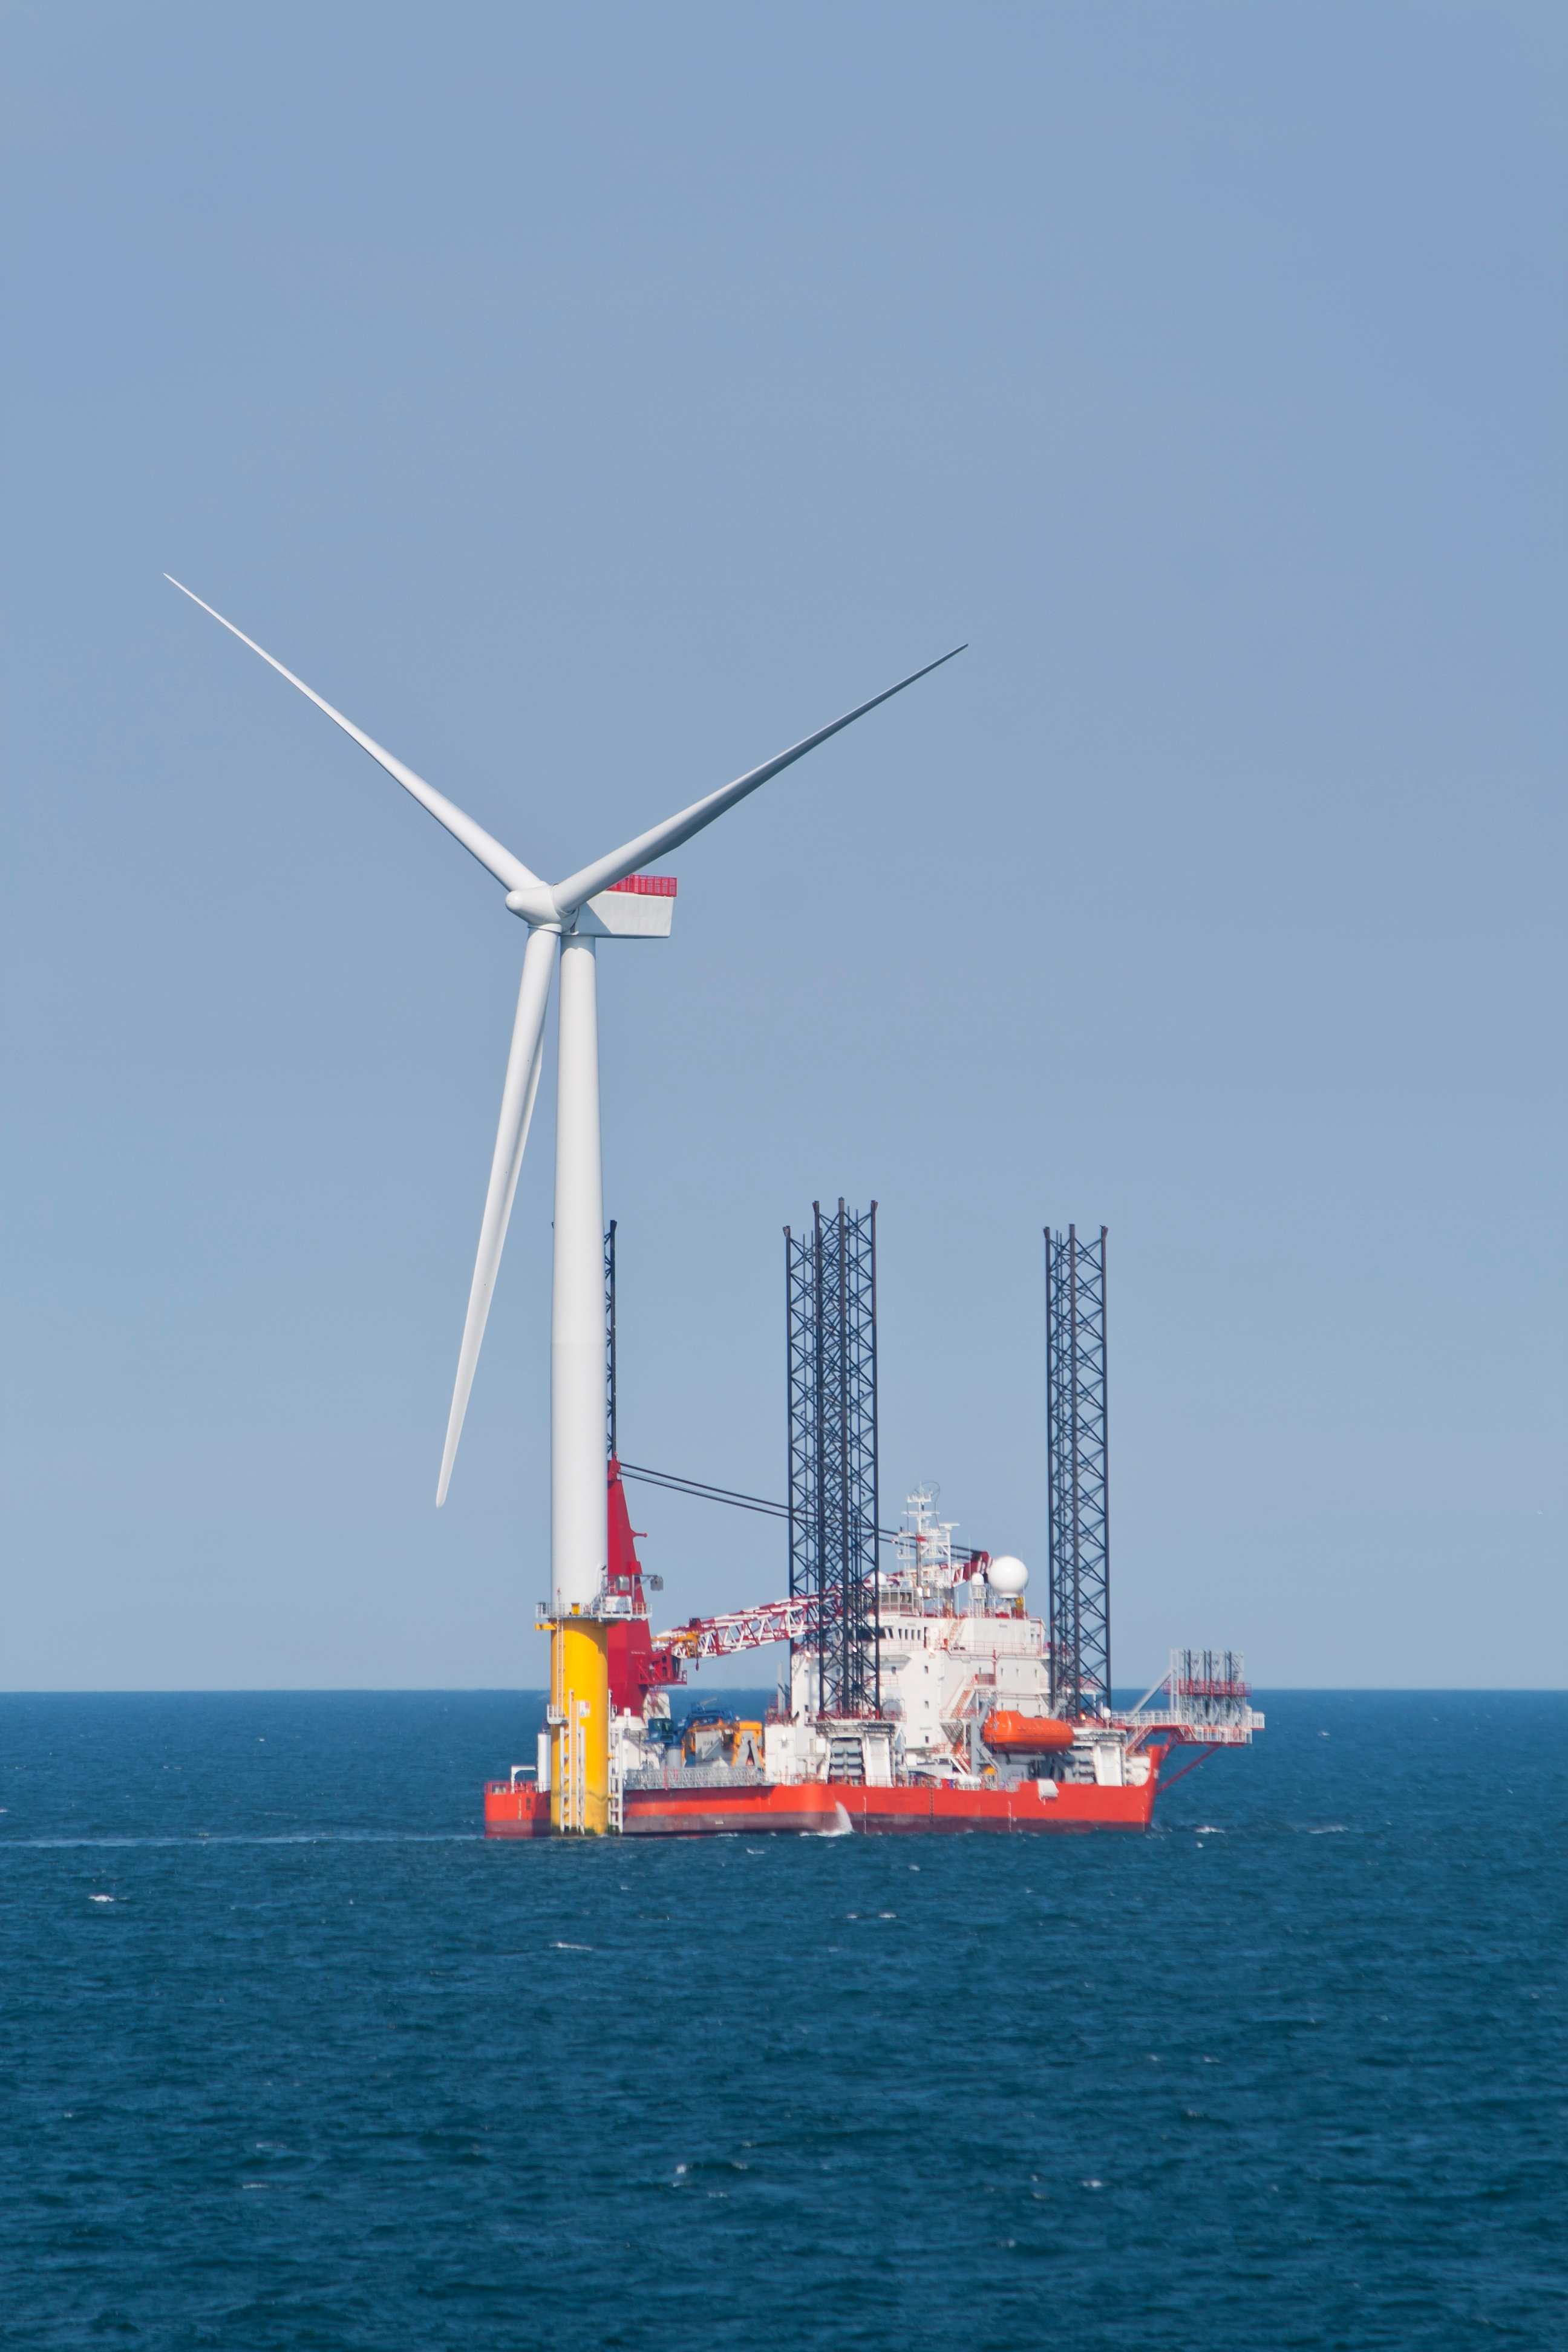 Wind_Turbine_Offshore_Under_Construction.jpg